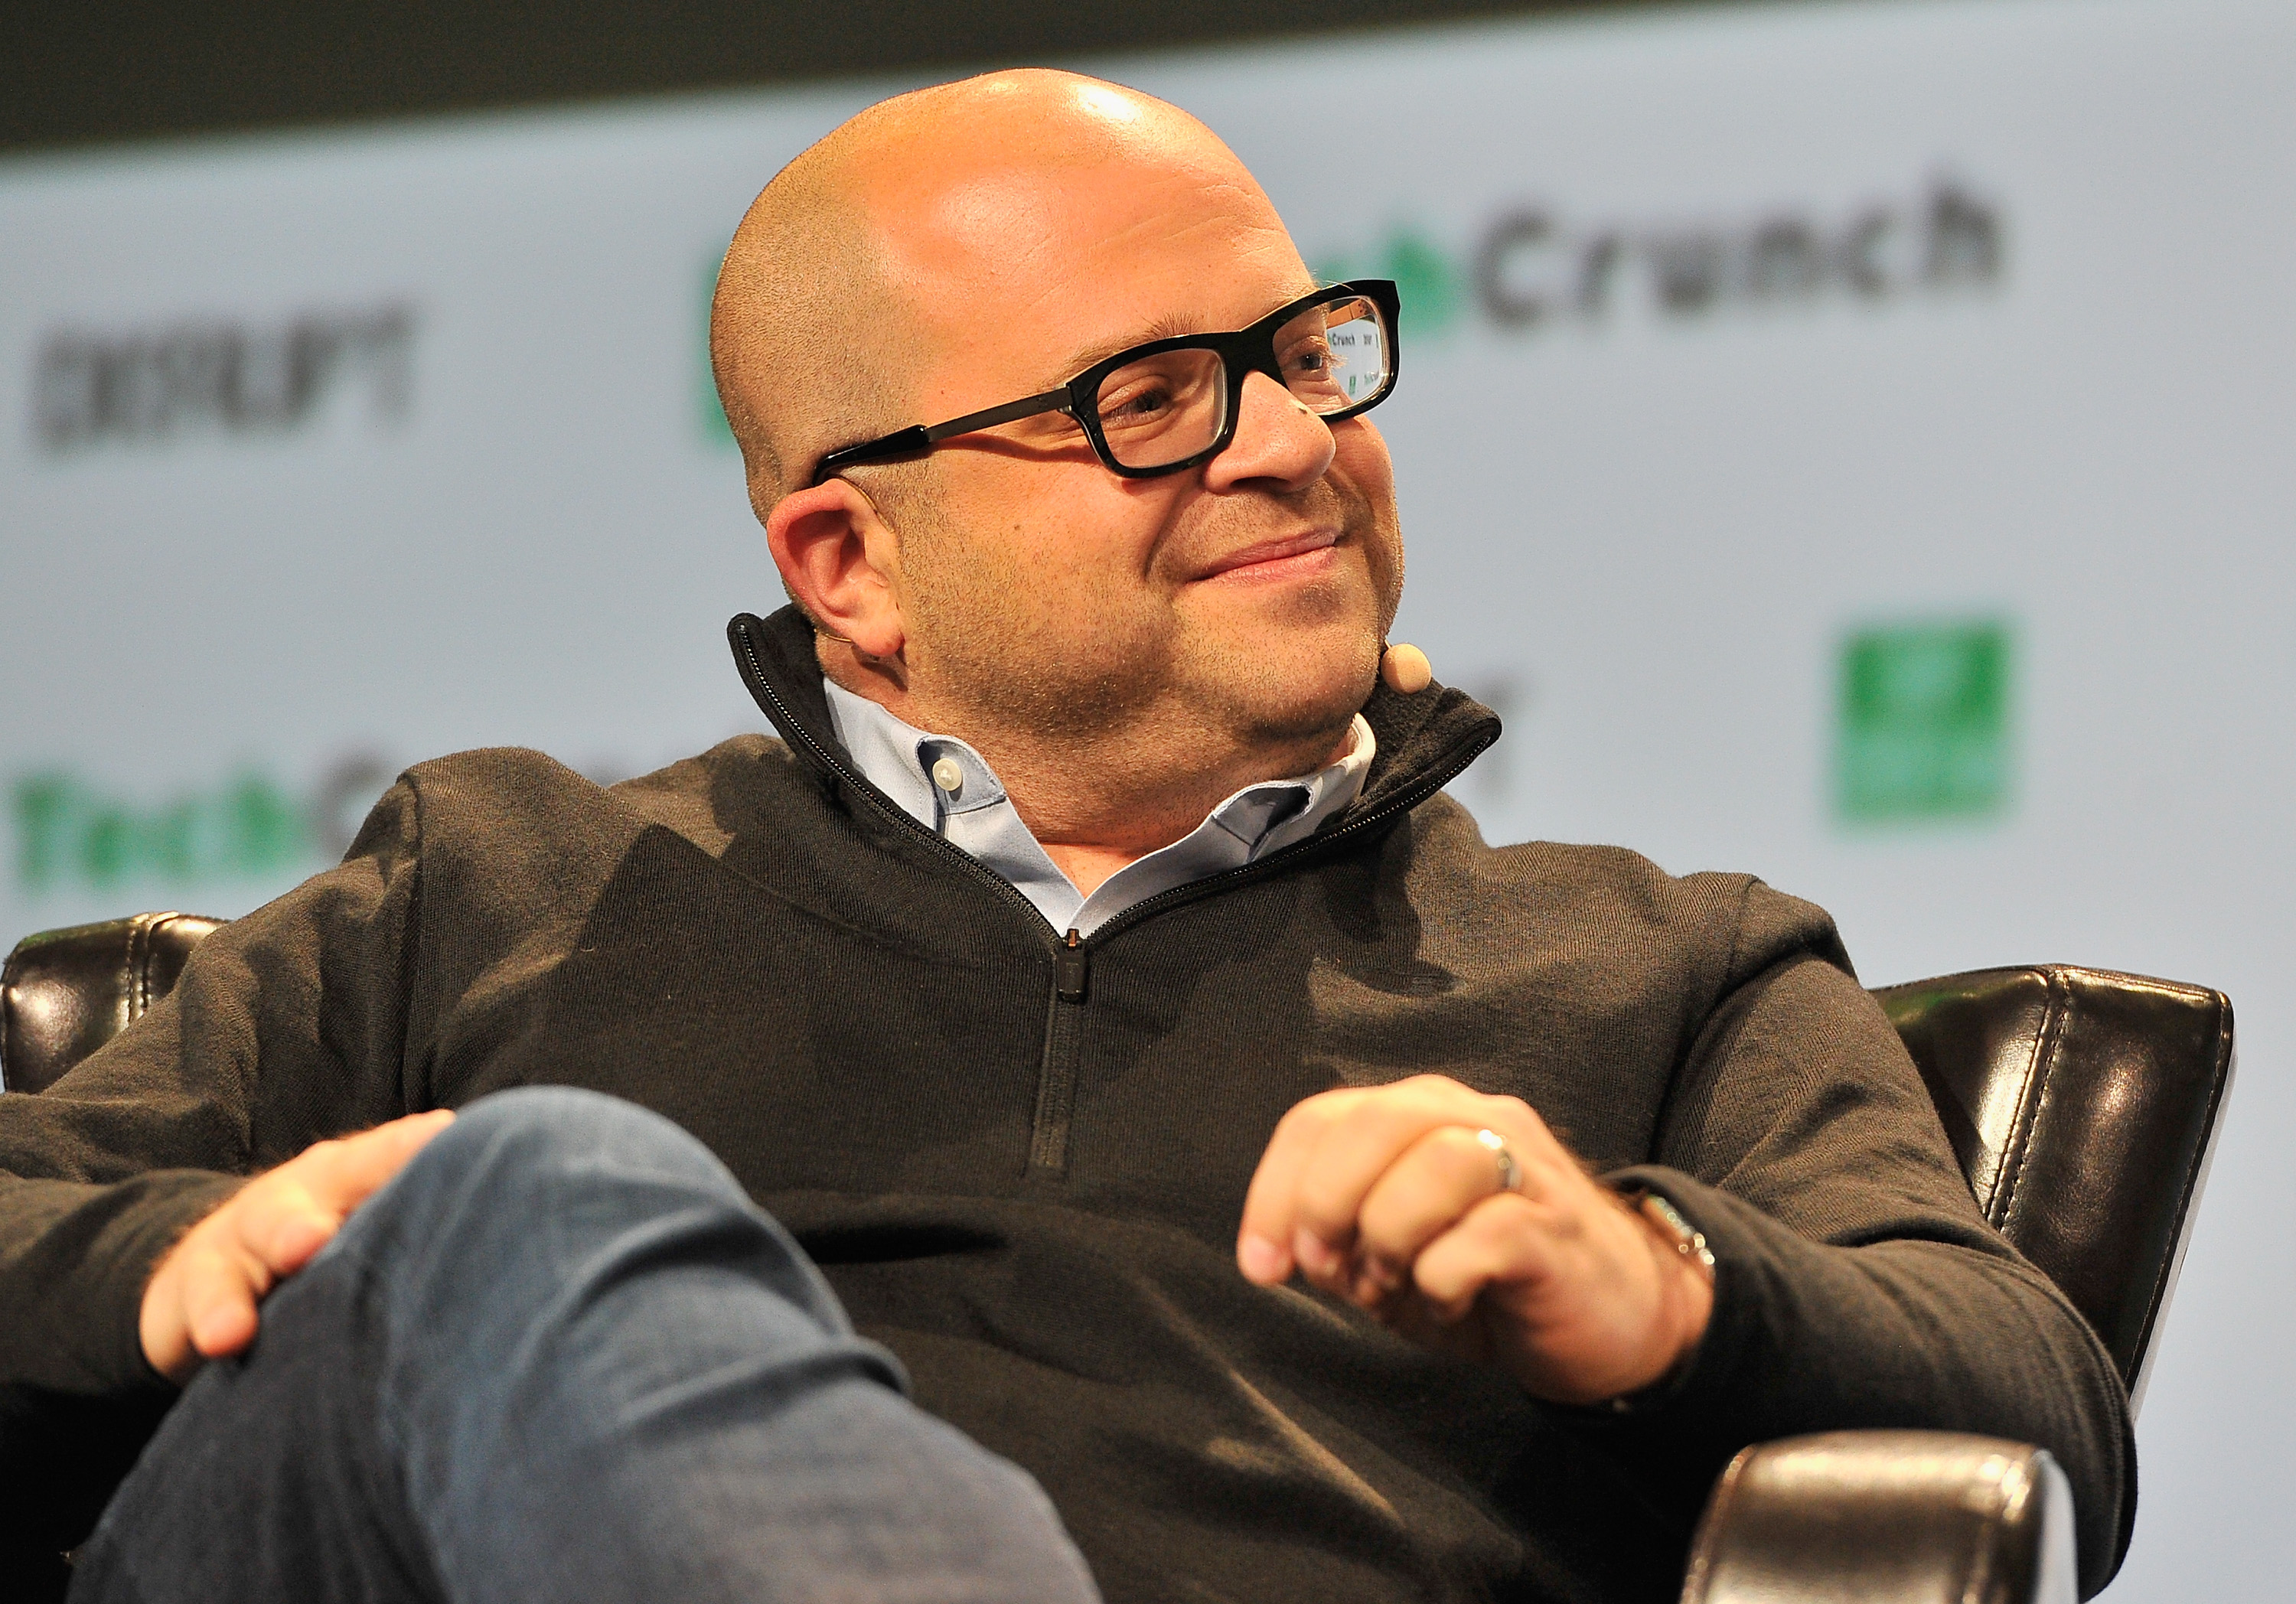 Twilio closes acquisition of email specialist SendGrid in all-stock deal now worth $3B  TechCrunch